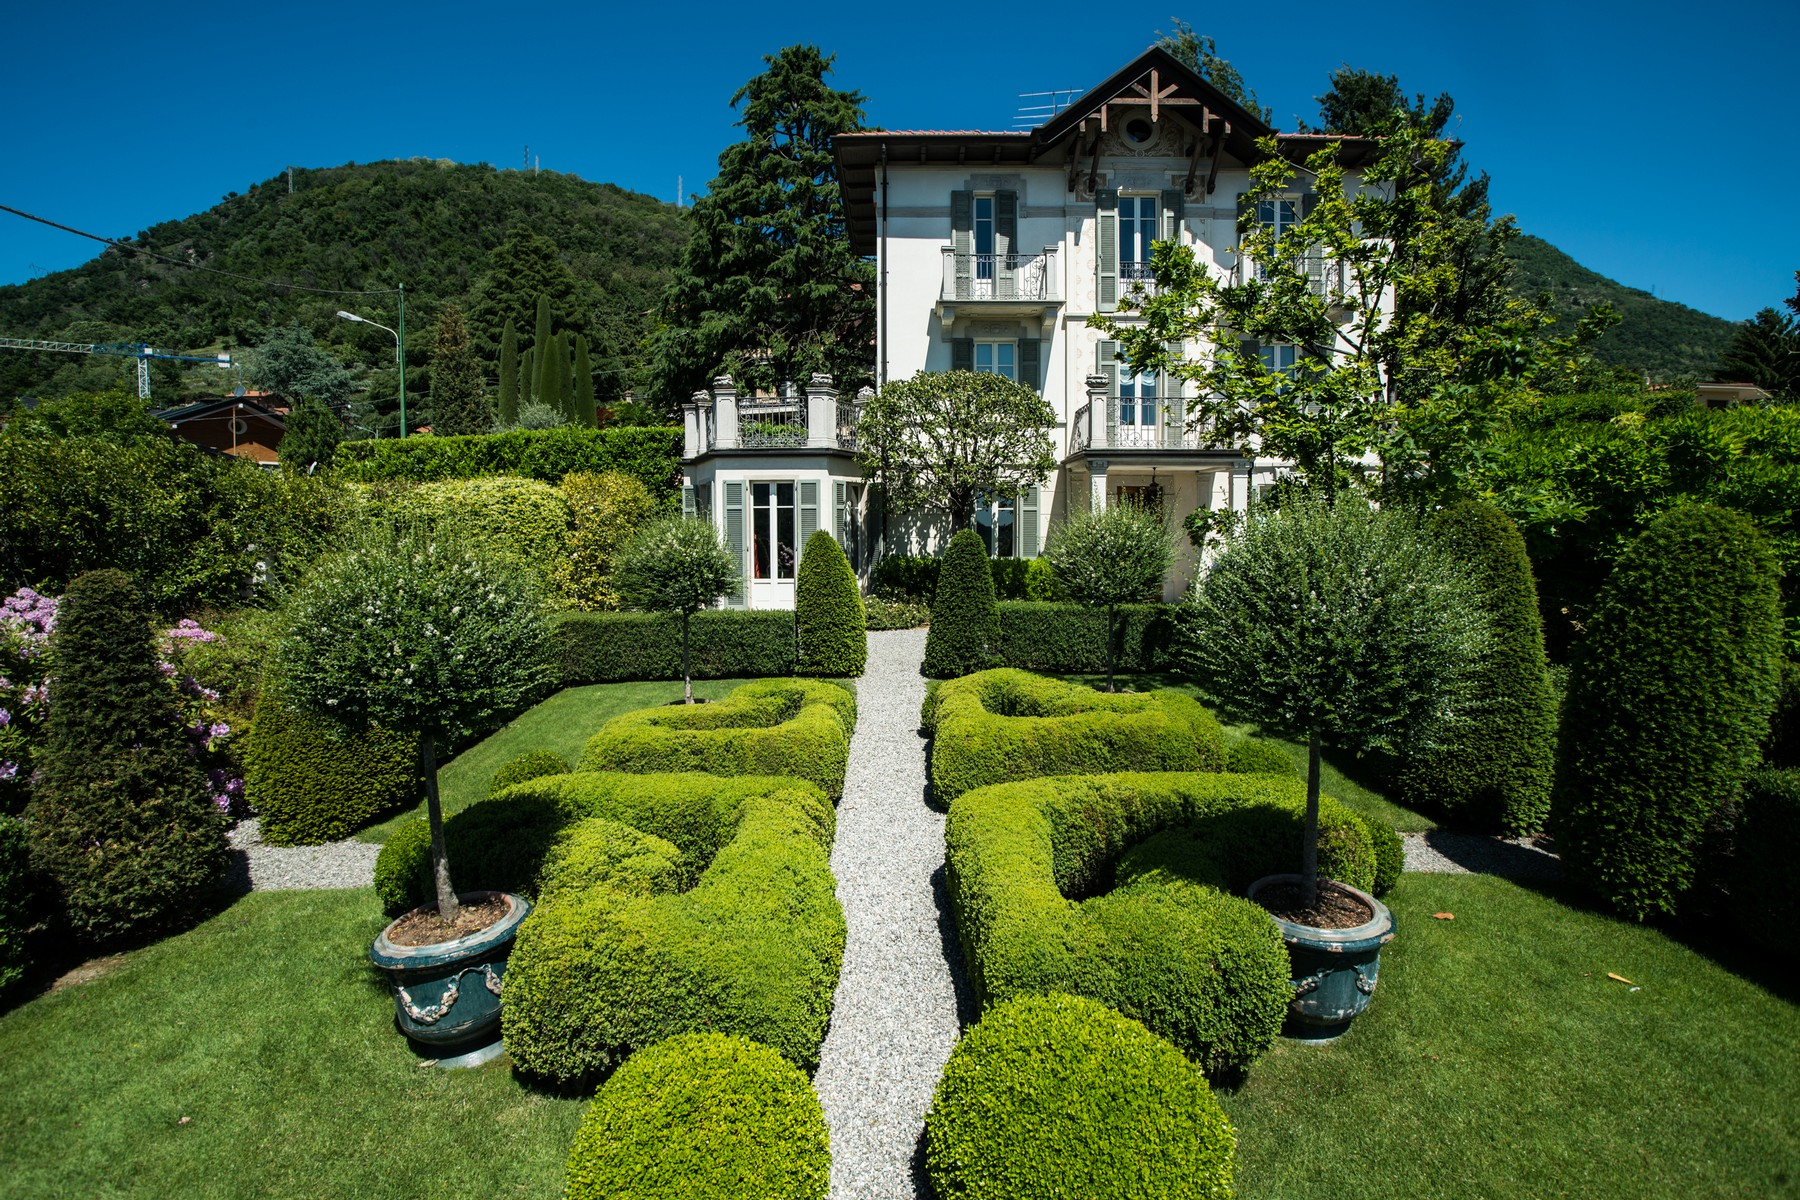 Additional photo for property listing at Gorgeous villa with dependance overlooking Lake Como Via Vittorio Veneto Cernobbio, Como 22012 Italie